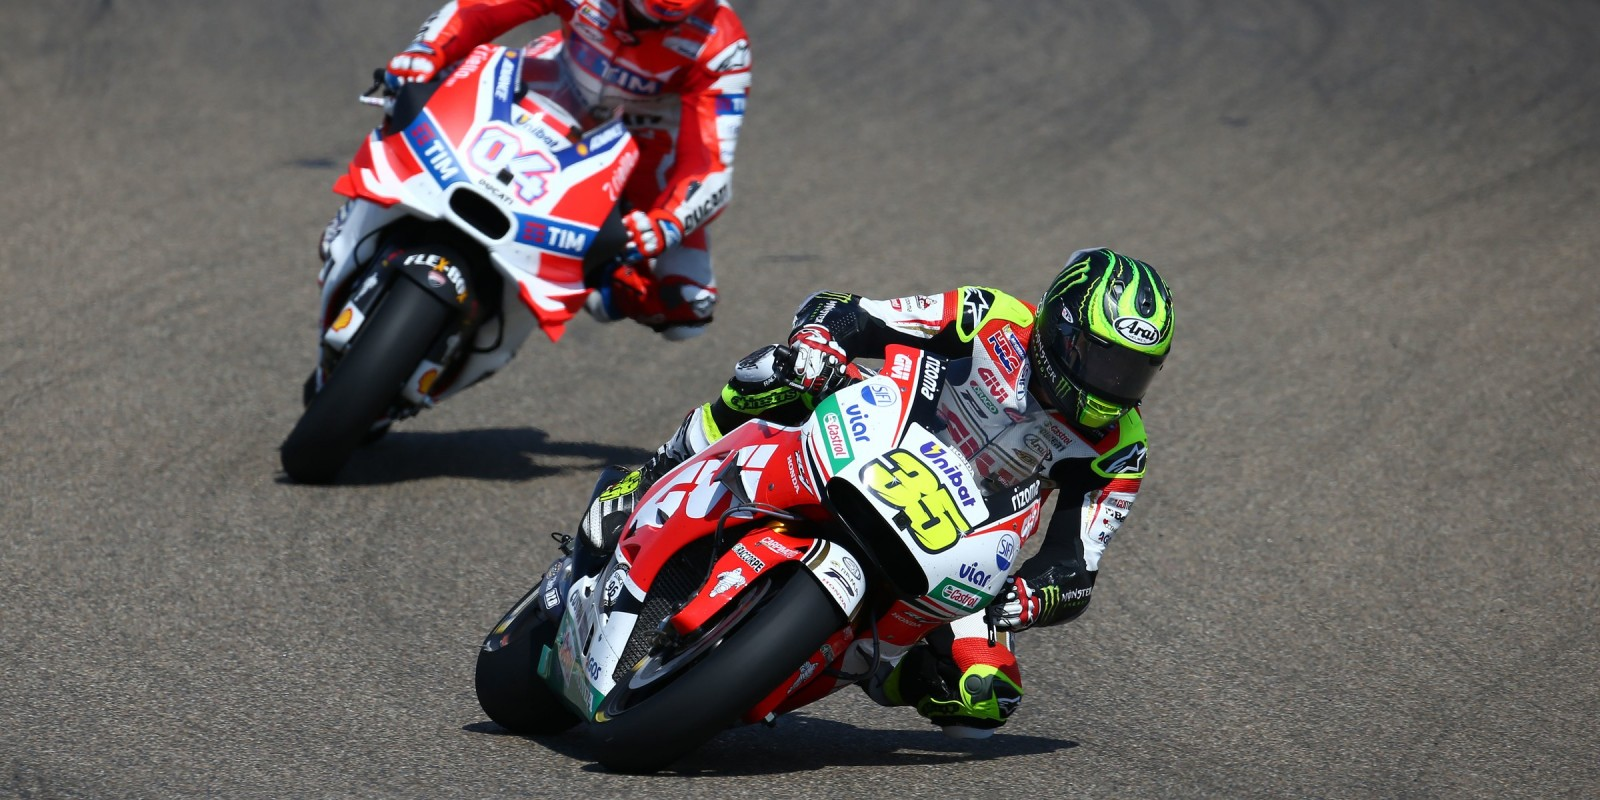 Monster athletes compete in the 2016 MotoGP season for race 1 in Aragon, Spain